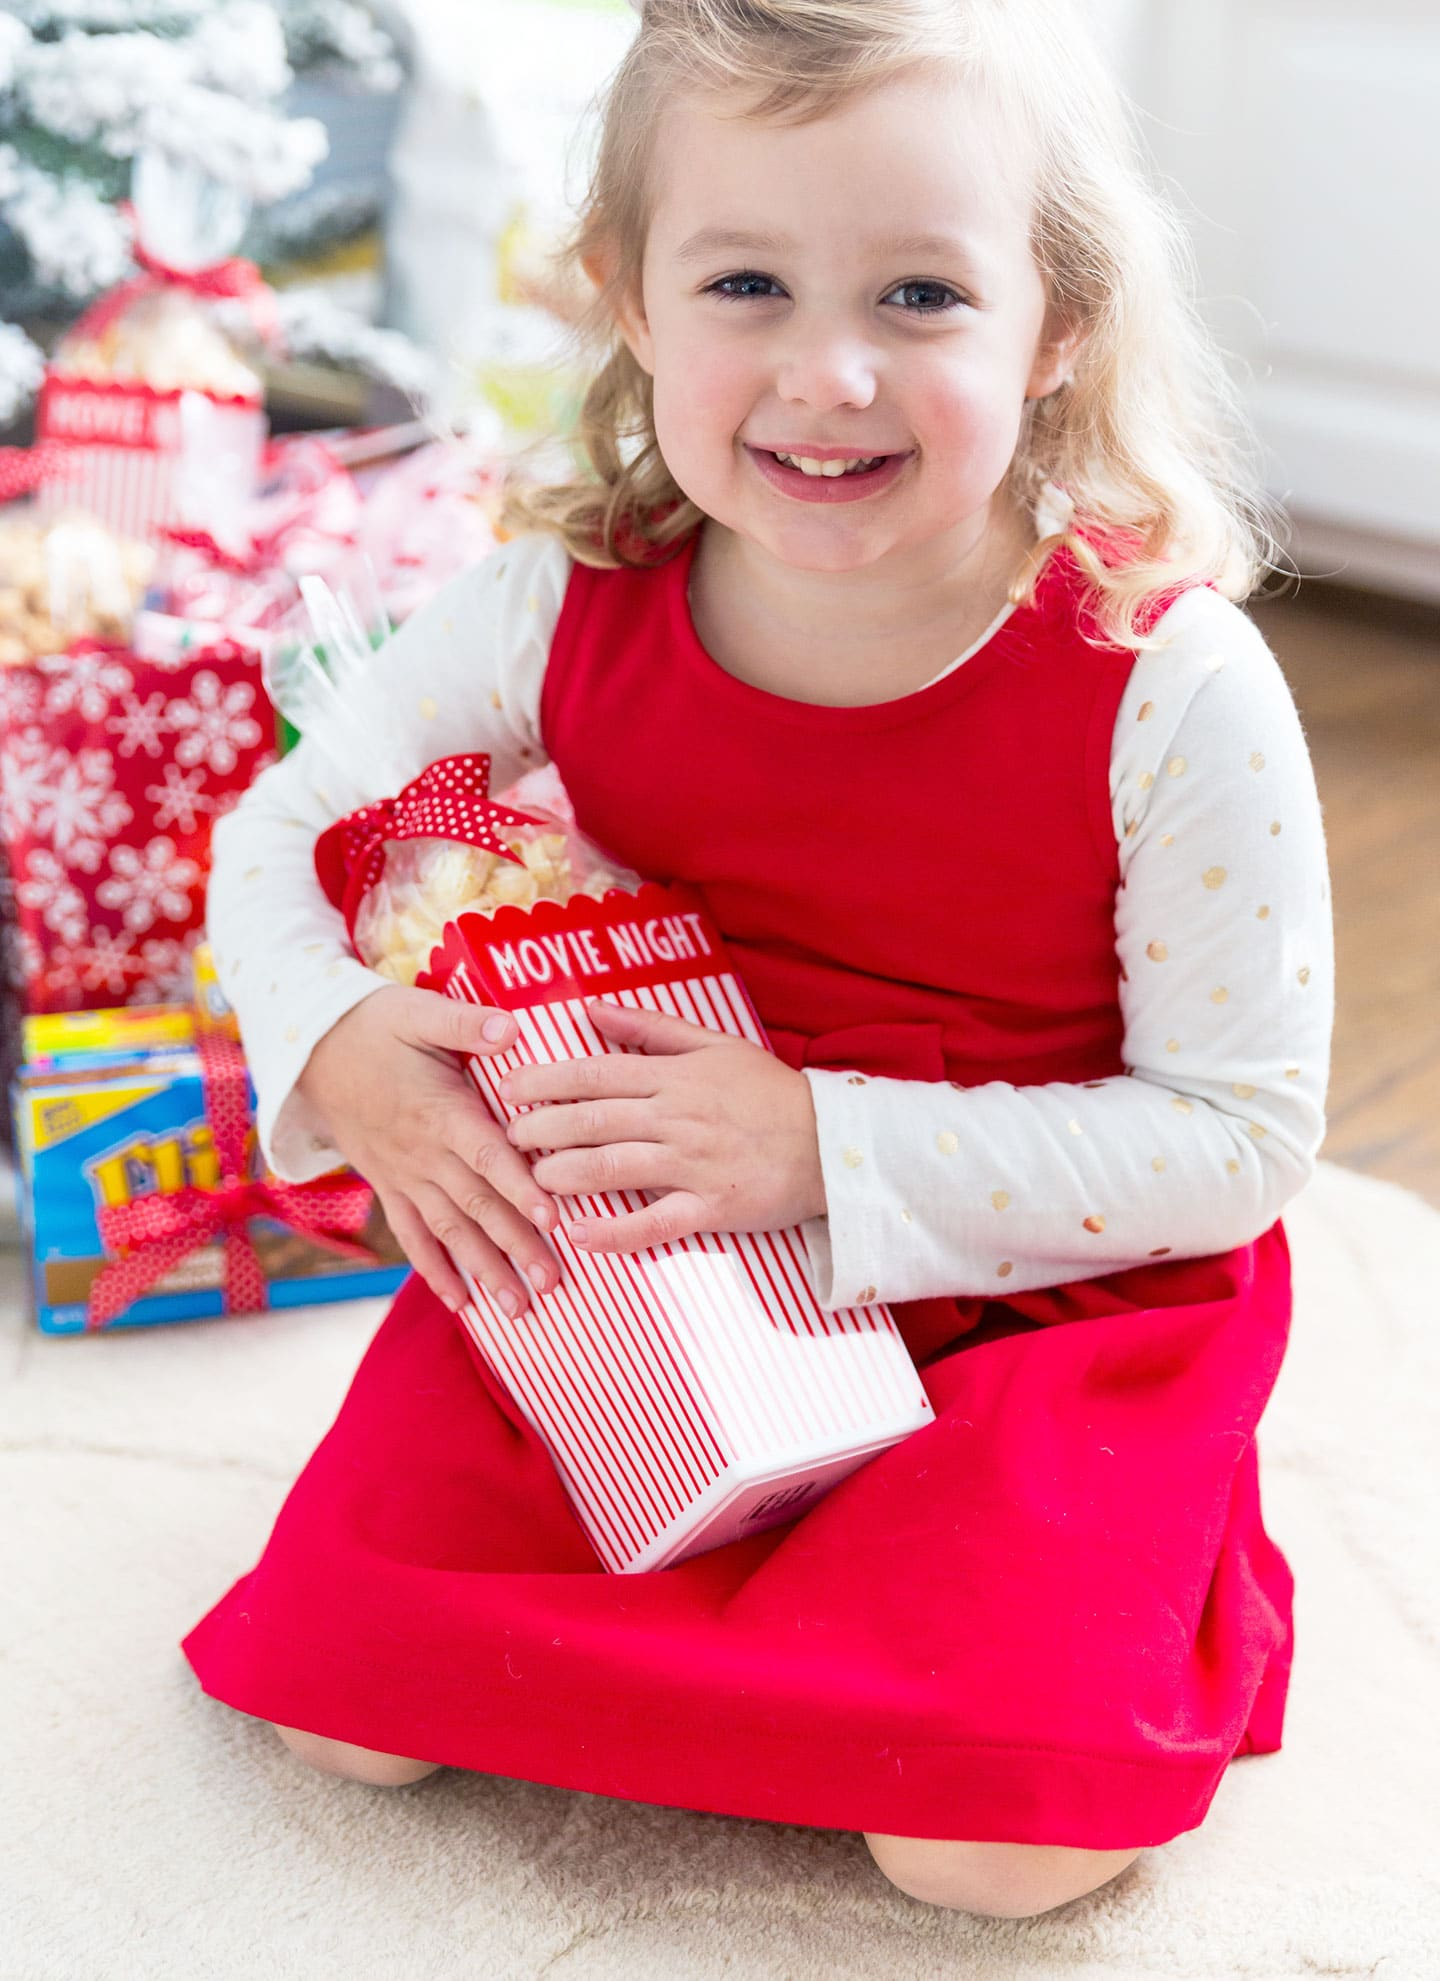 Host a Holiday Movie NIght! Ideas for creating a cute Holiday Movie Night Kit